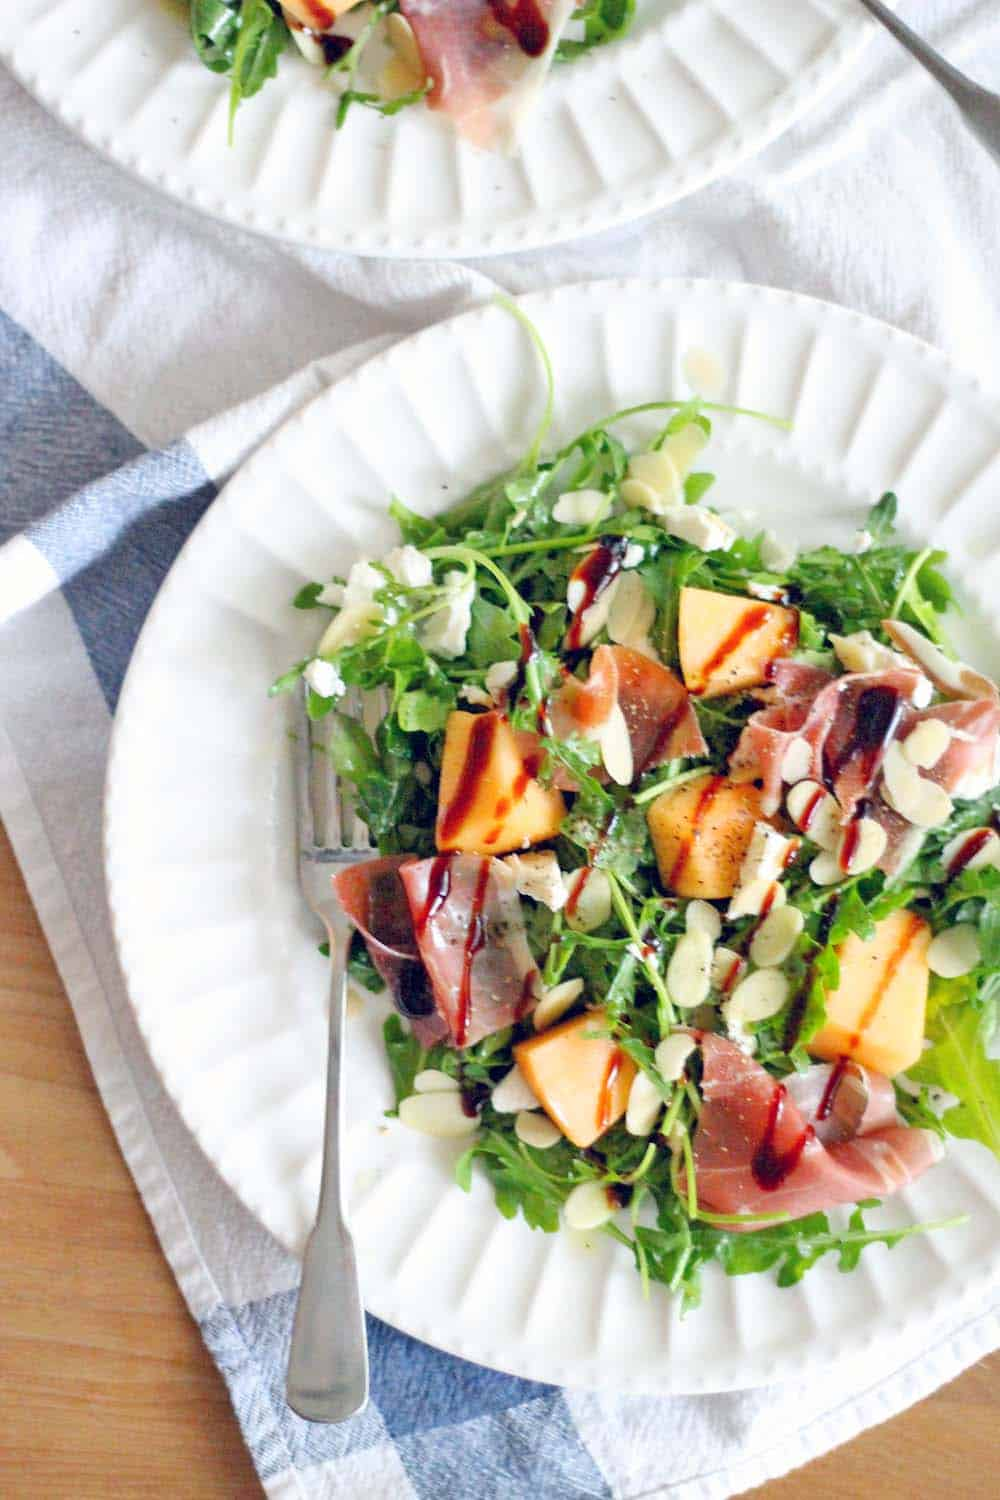 Arugula, Cantaloupe, and Prosciutto Salad with Goat Cheese and Almonds | This salad is a great savory way to enjoy cantaloupe with a great salty, sweet, and tangy balance- and it's satisfying enough to enjoy as a meal!